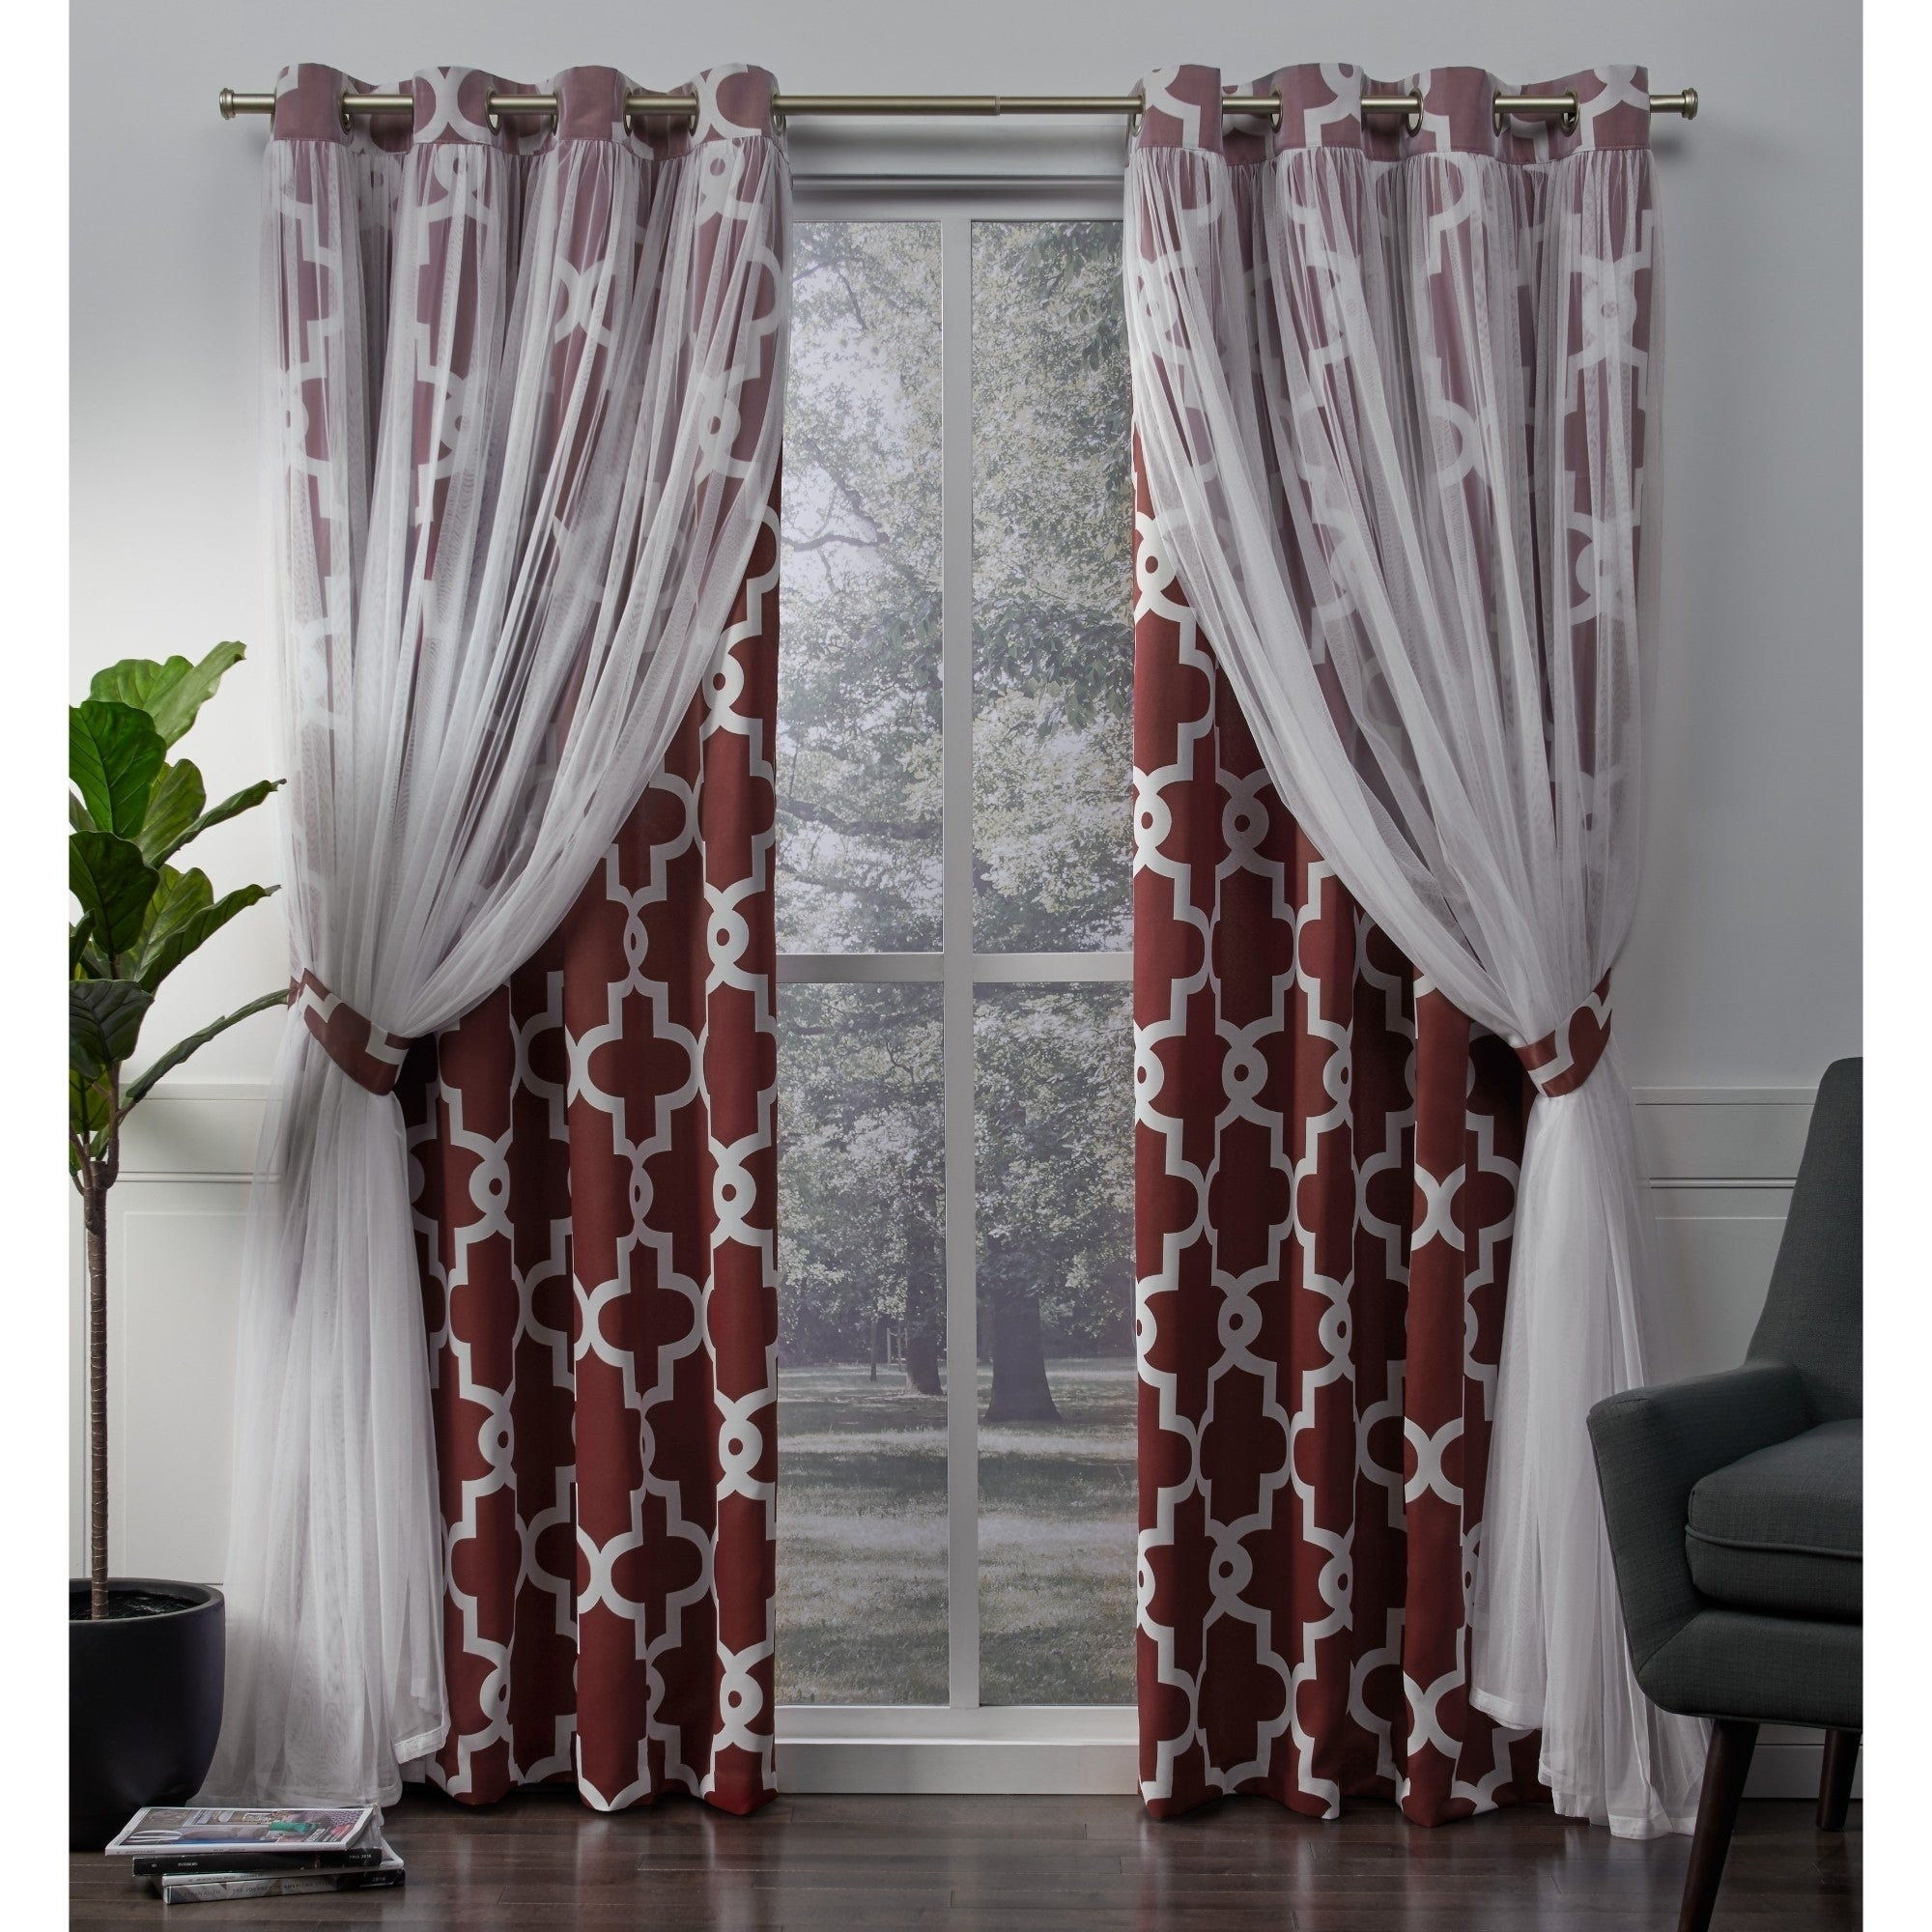 Details About Ati Home Alegra Thermal Woven Blackout Grommet Top Curtain Pertaining To Woven Blackout Curtain Panel Pairs With Grommet Top (View 5 of 30)